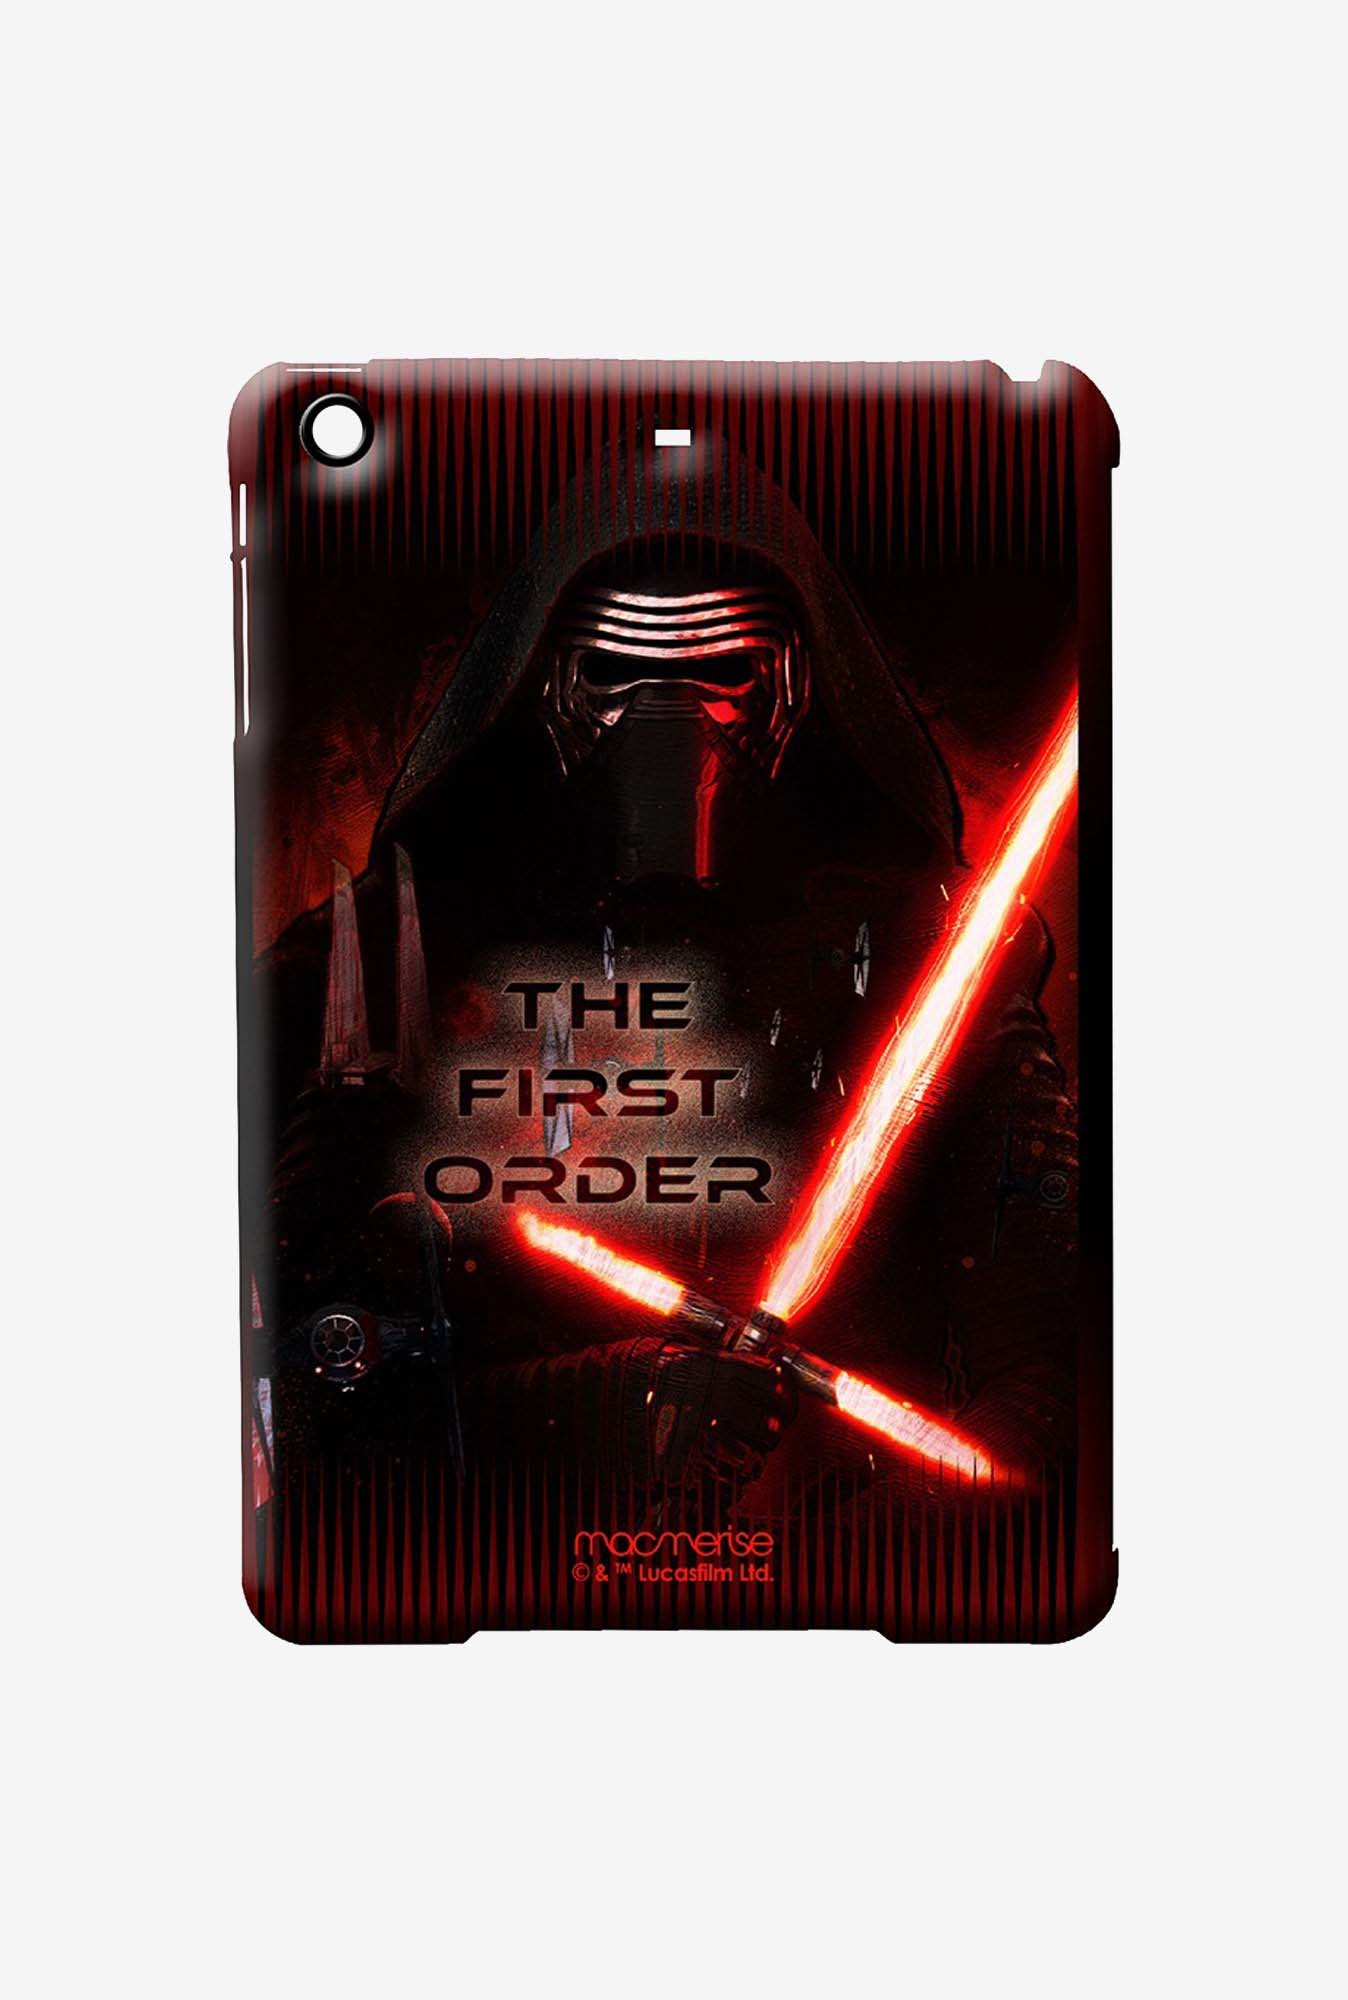 Macmerise The First Order Pro Case for iPad 2/3/4